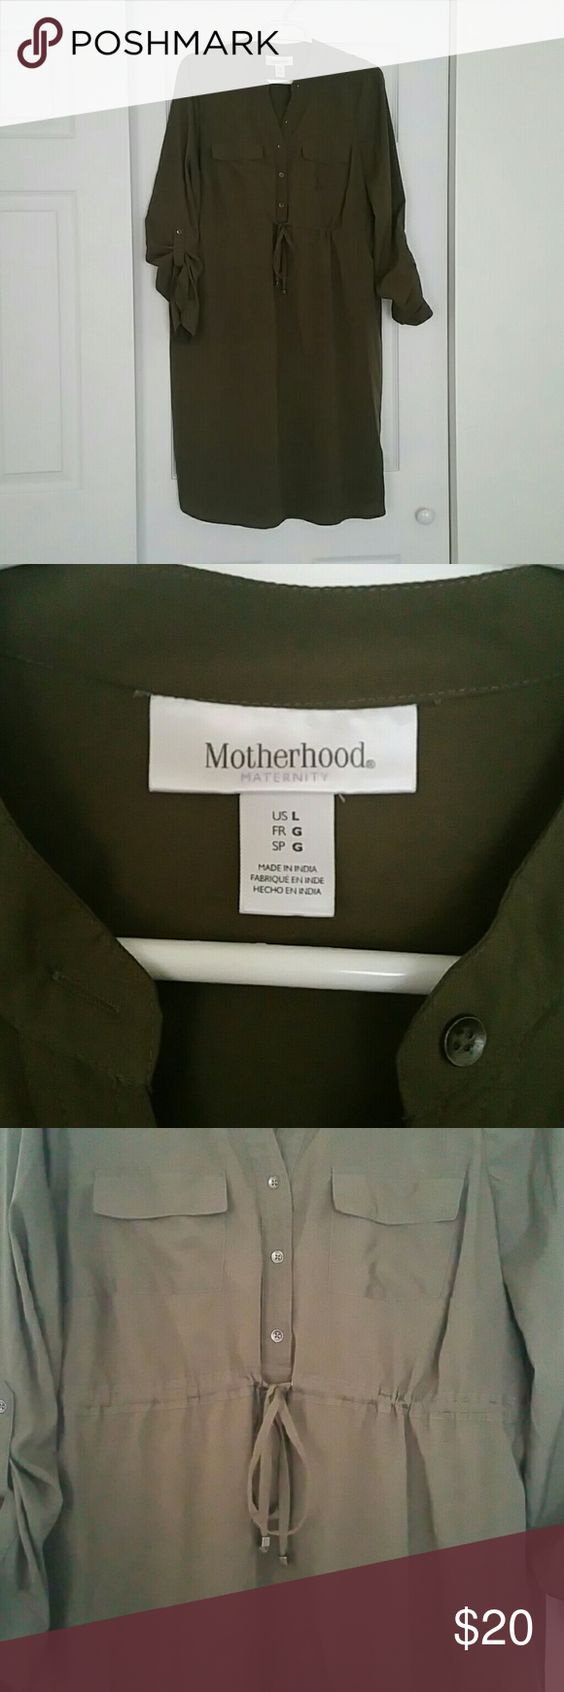 Olive Maternity Dress Olive Motherhood Maternity dress. Hits a little above the knee. Has 3/4 sleeves with button detail. This dress has a tie waist with bead detail on ties. Very comfortable for work or play. Motherhood Maternity Dresses Mini